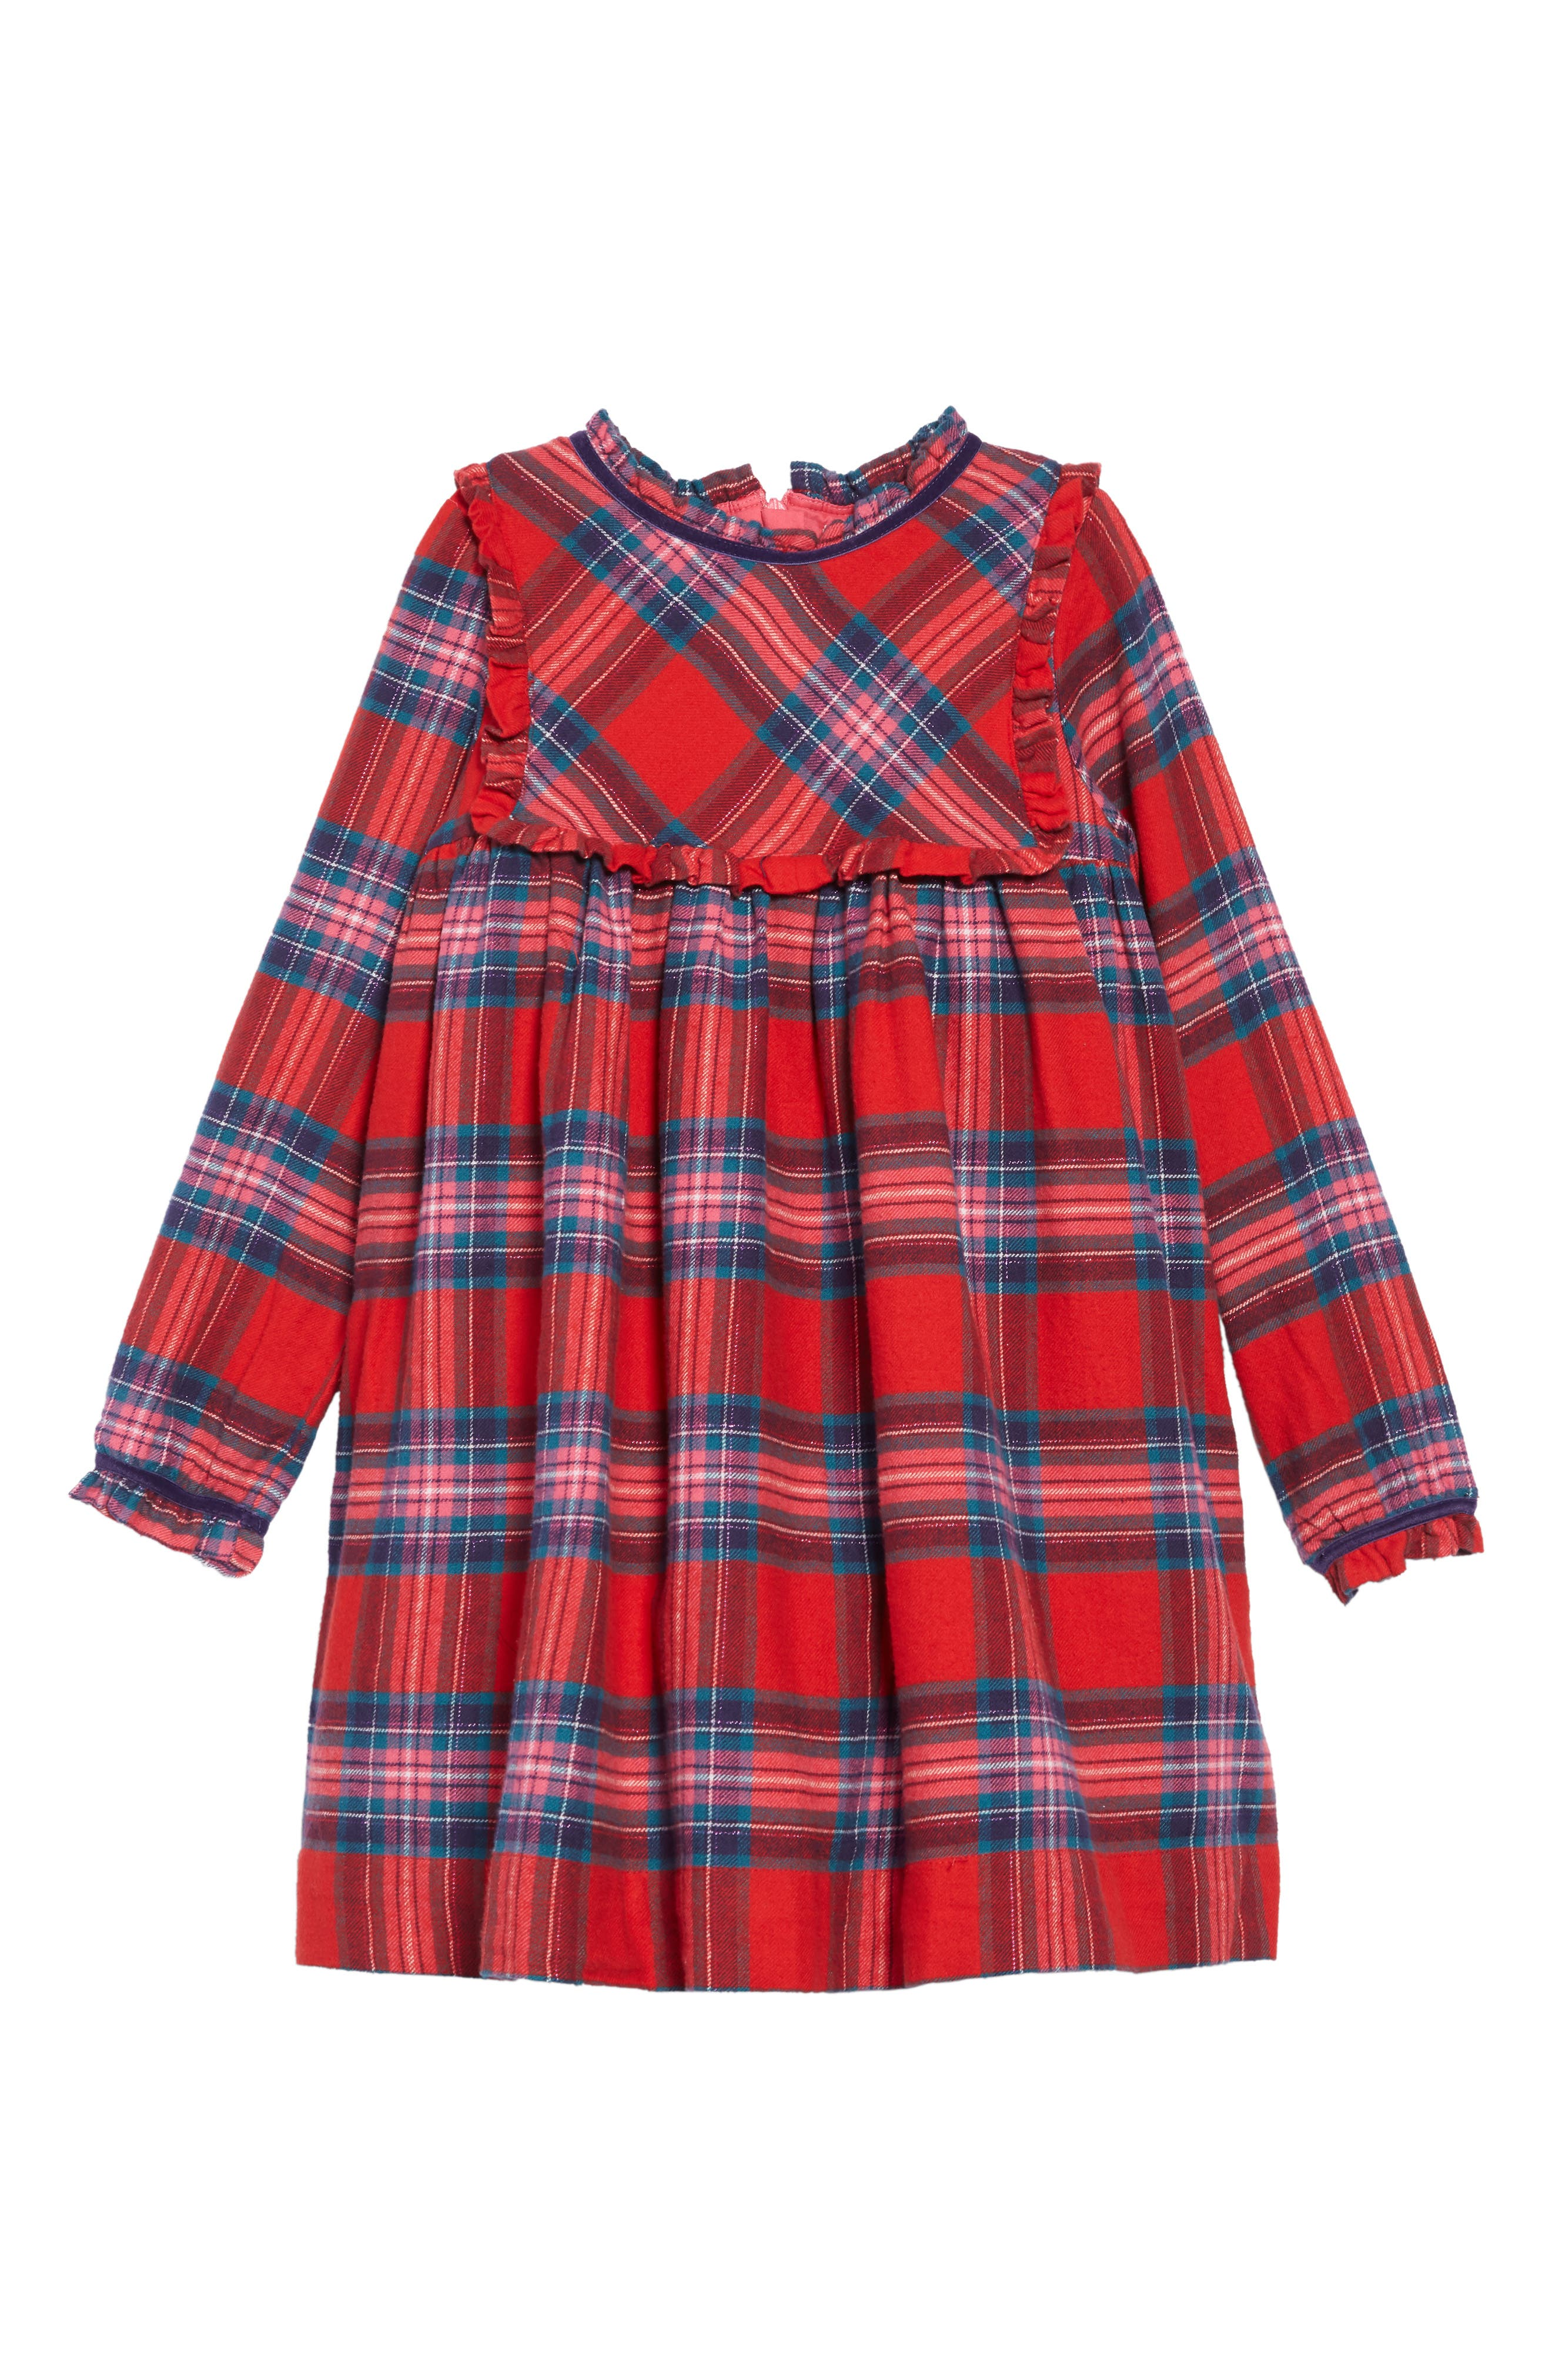 Festive Sparkle Plaid Dress,                             Main thumbnail 1, color,                             RED ENGINE RED/ POP PINK CHECK